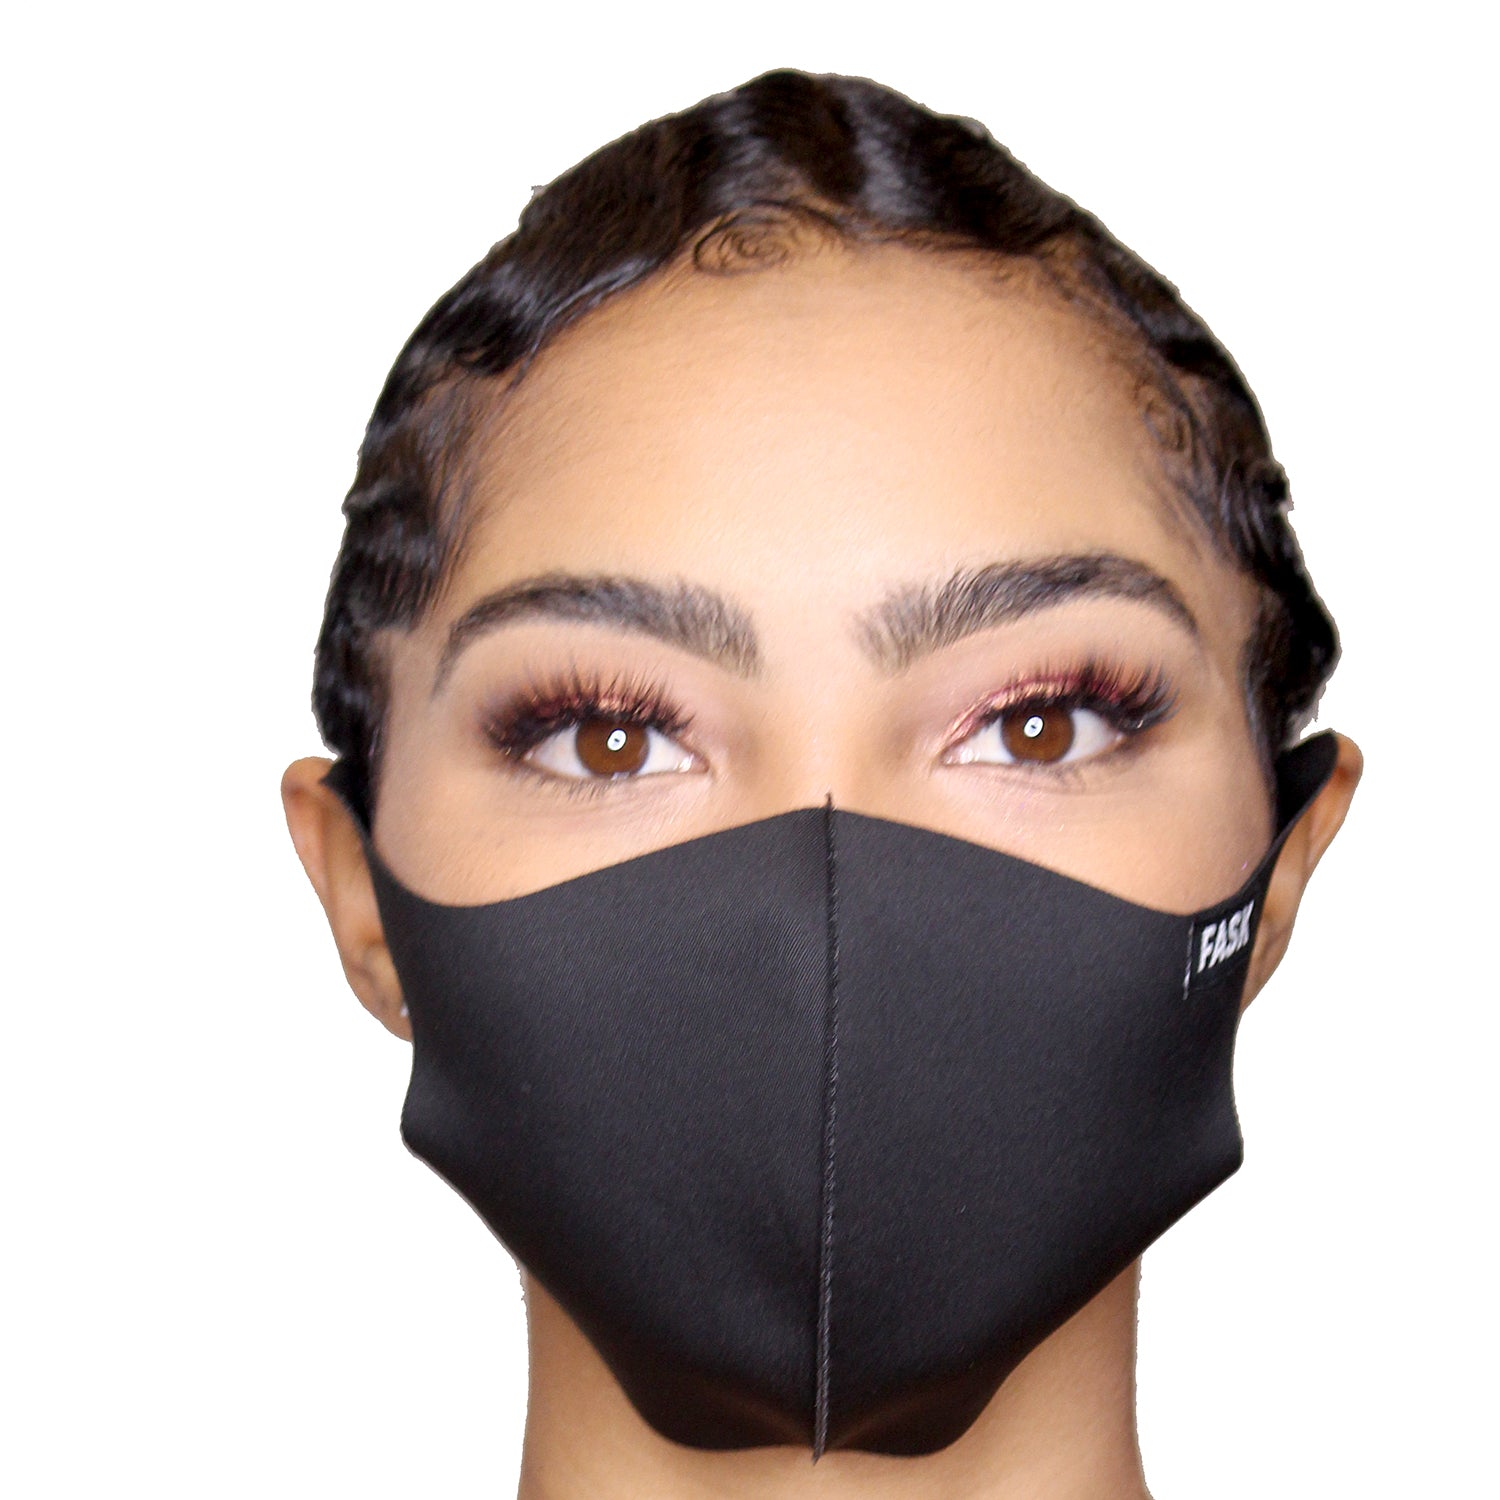 FASK Full Armour Silk Stretch Clean Mask with Interchangeable Filter-Black